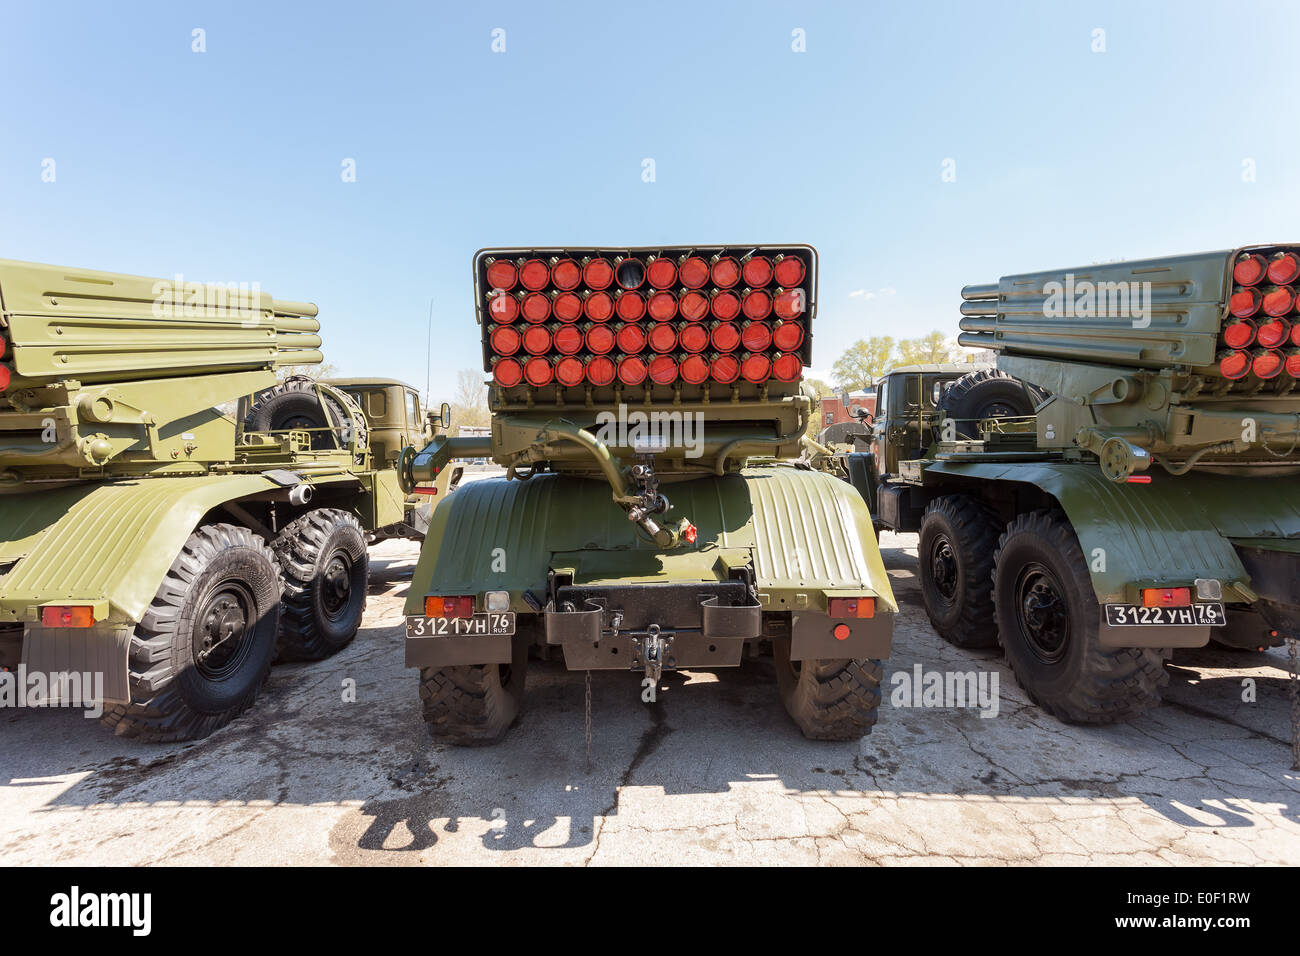 rocket launcher stock photos rocket launcher stock images alamy. Black Bedroom Furniture Sets. Home Design Ideas